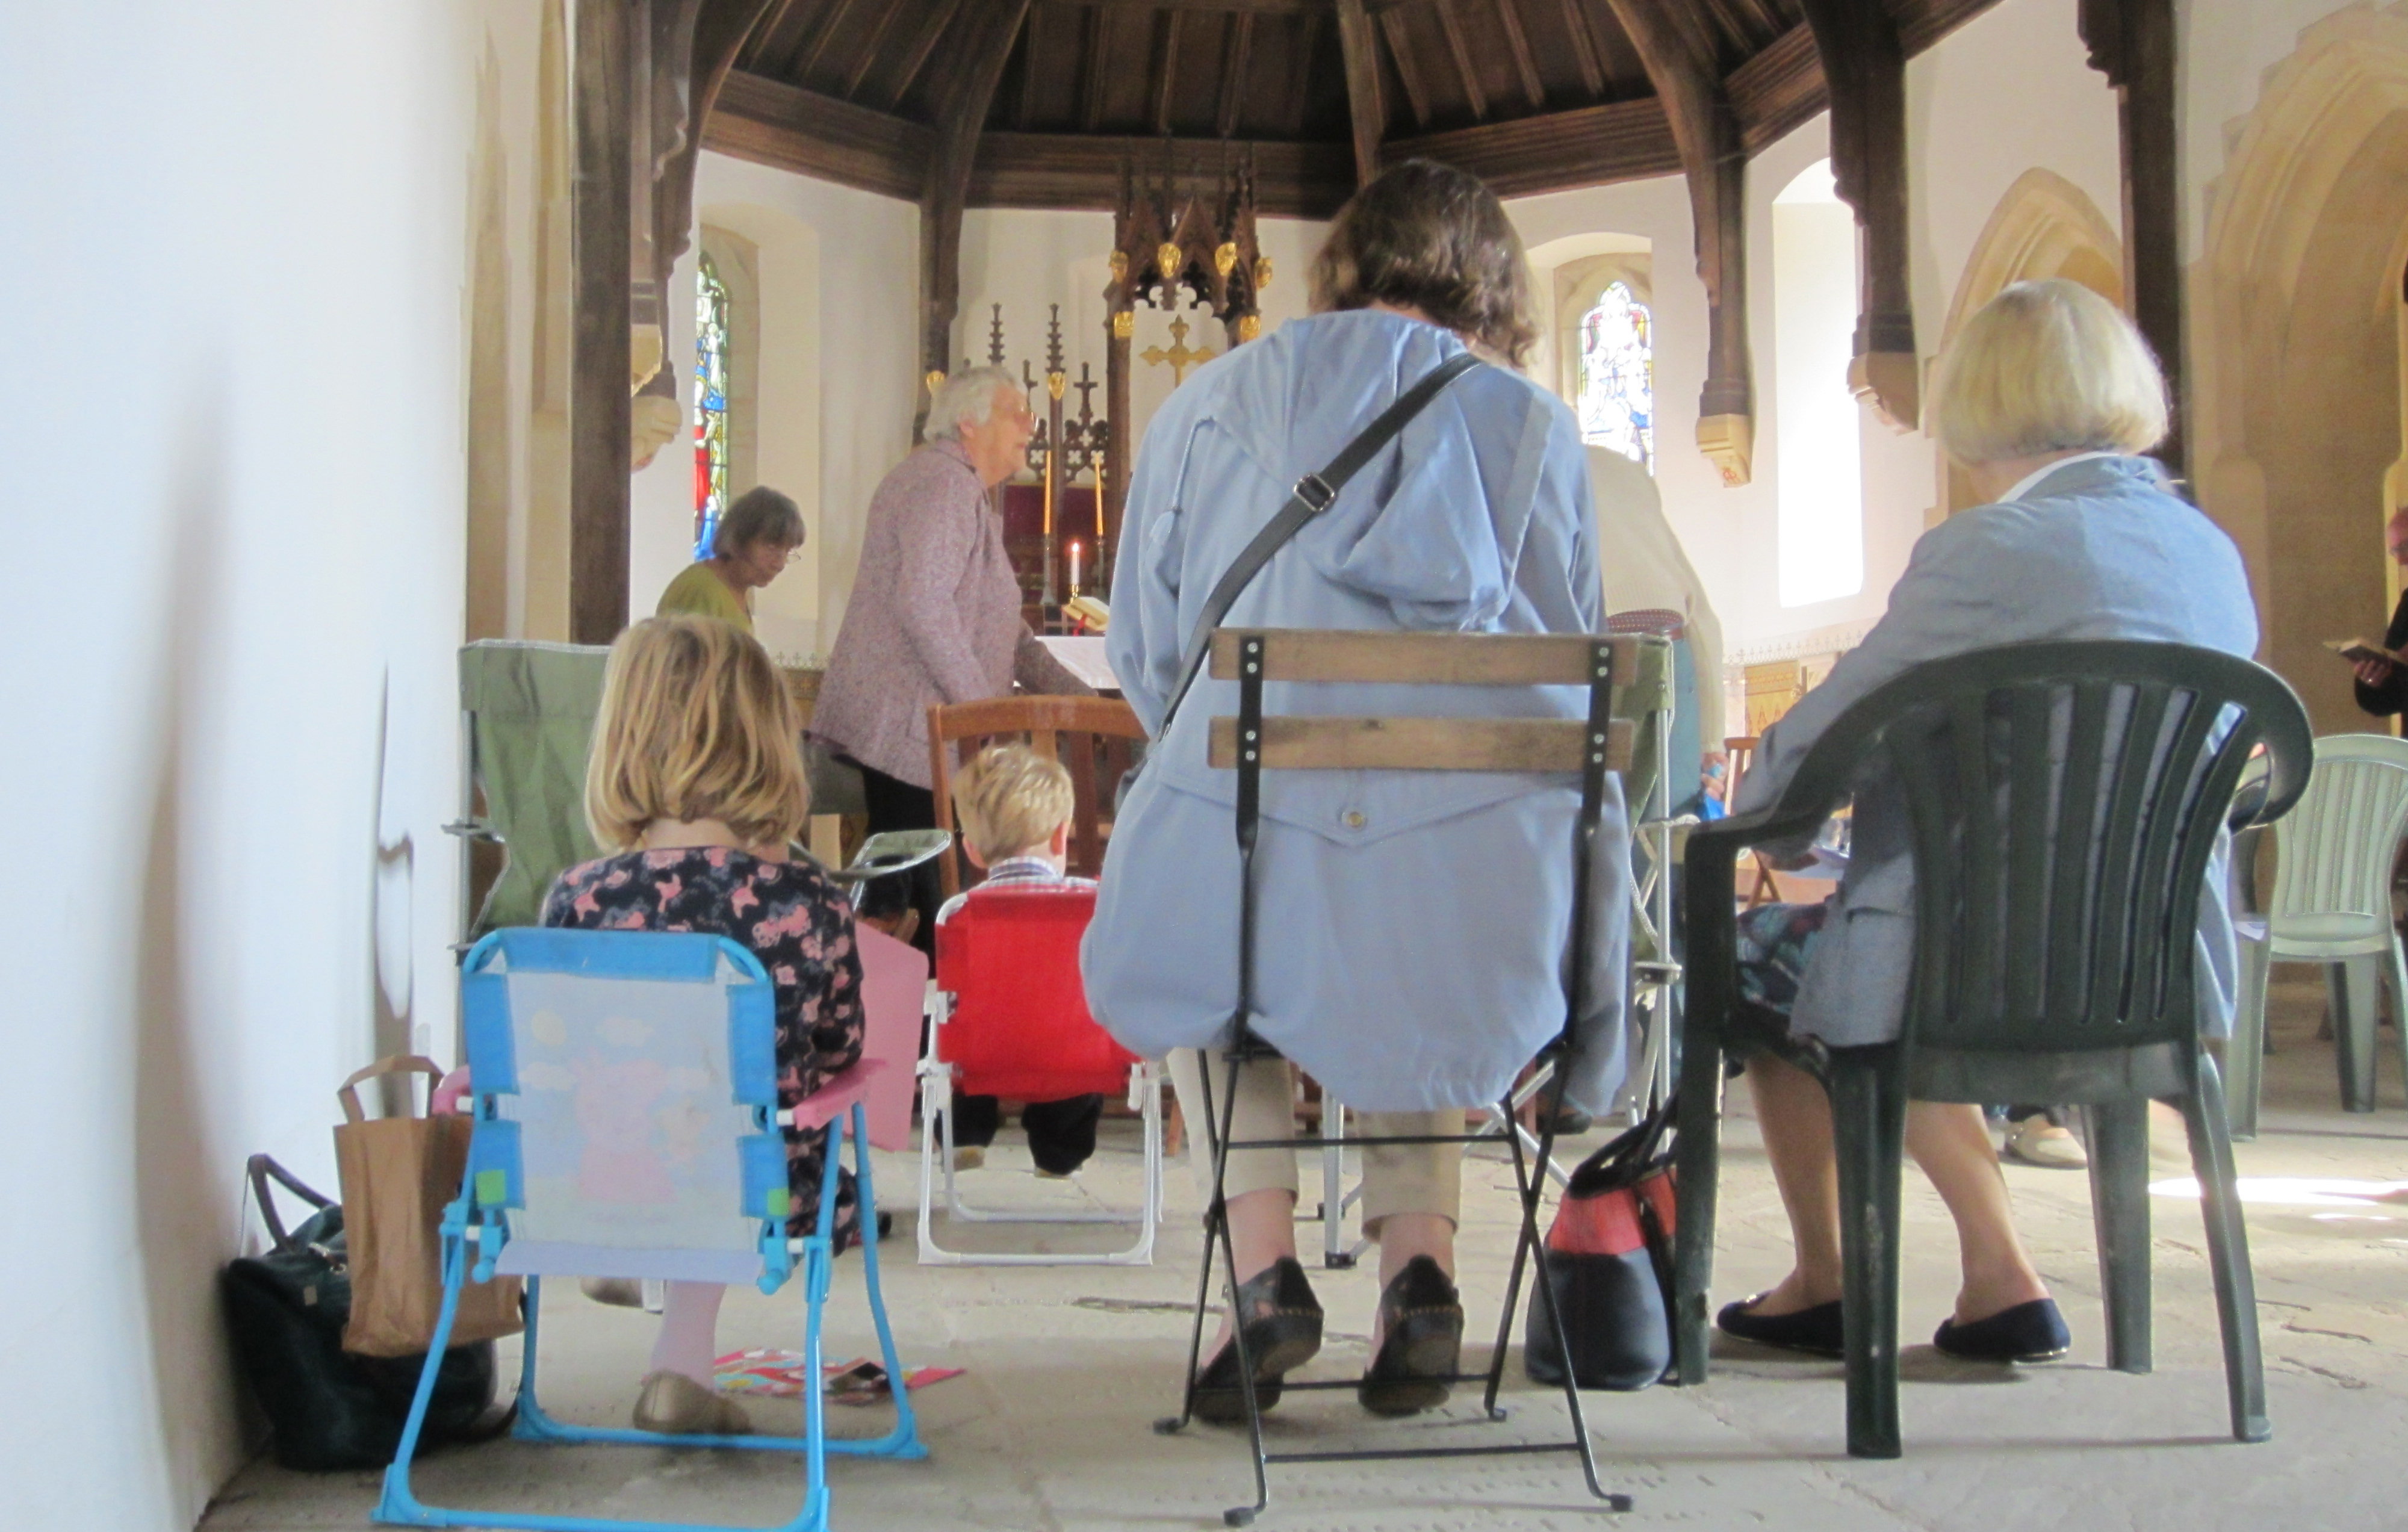 Mass in Rotherwas Chapel